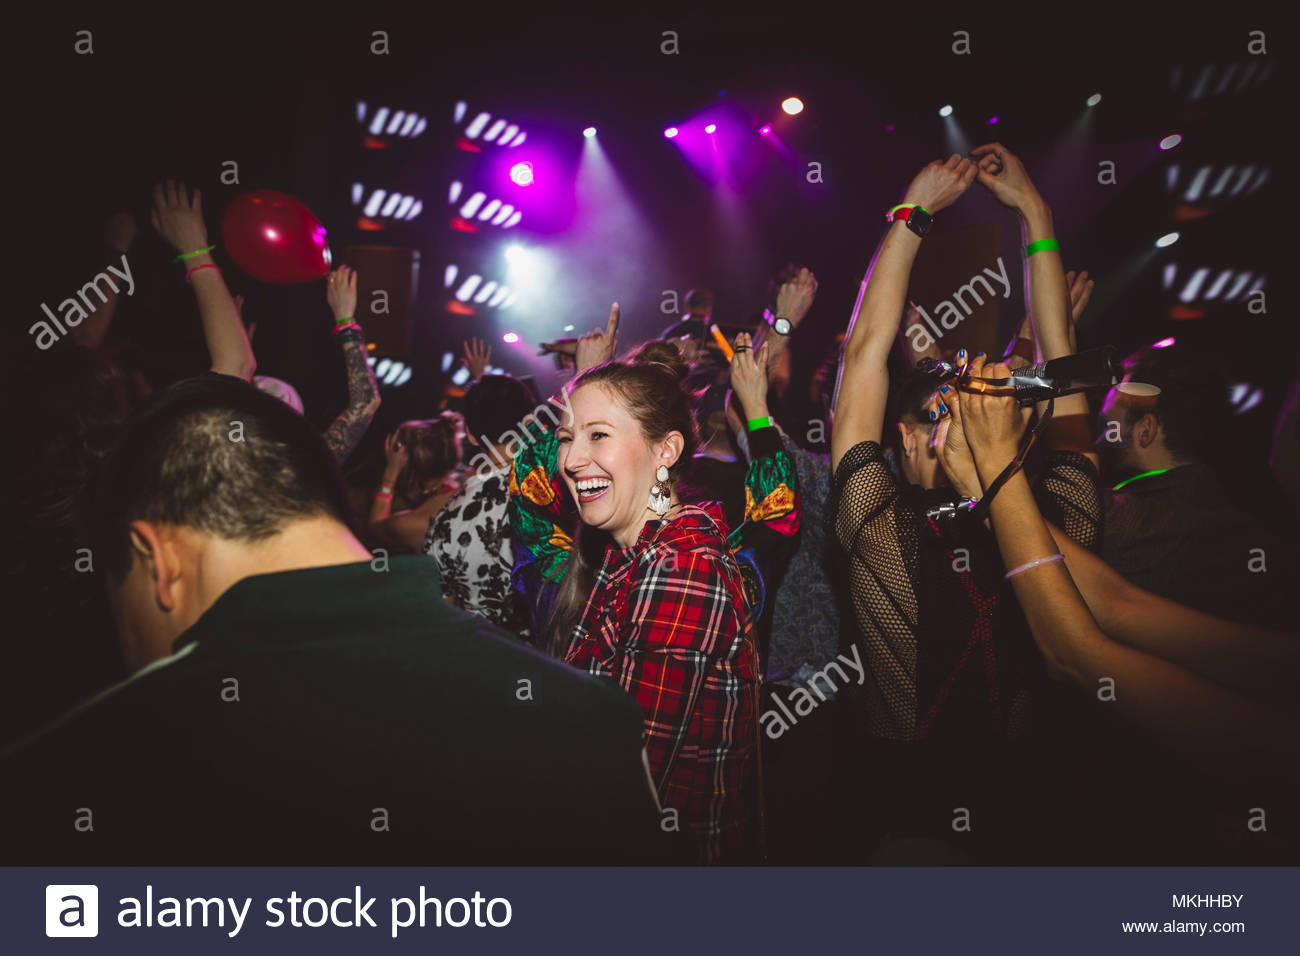 Female millennial laughing, partying and dancing in nightclub - Stock Image